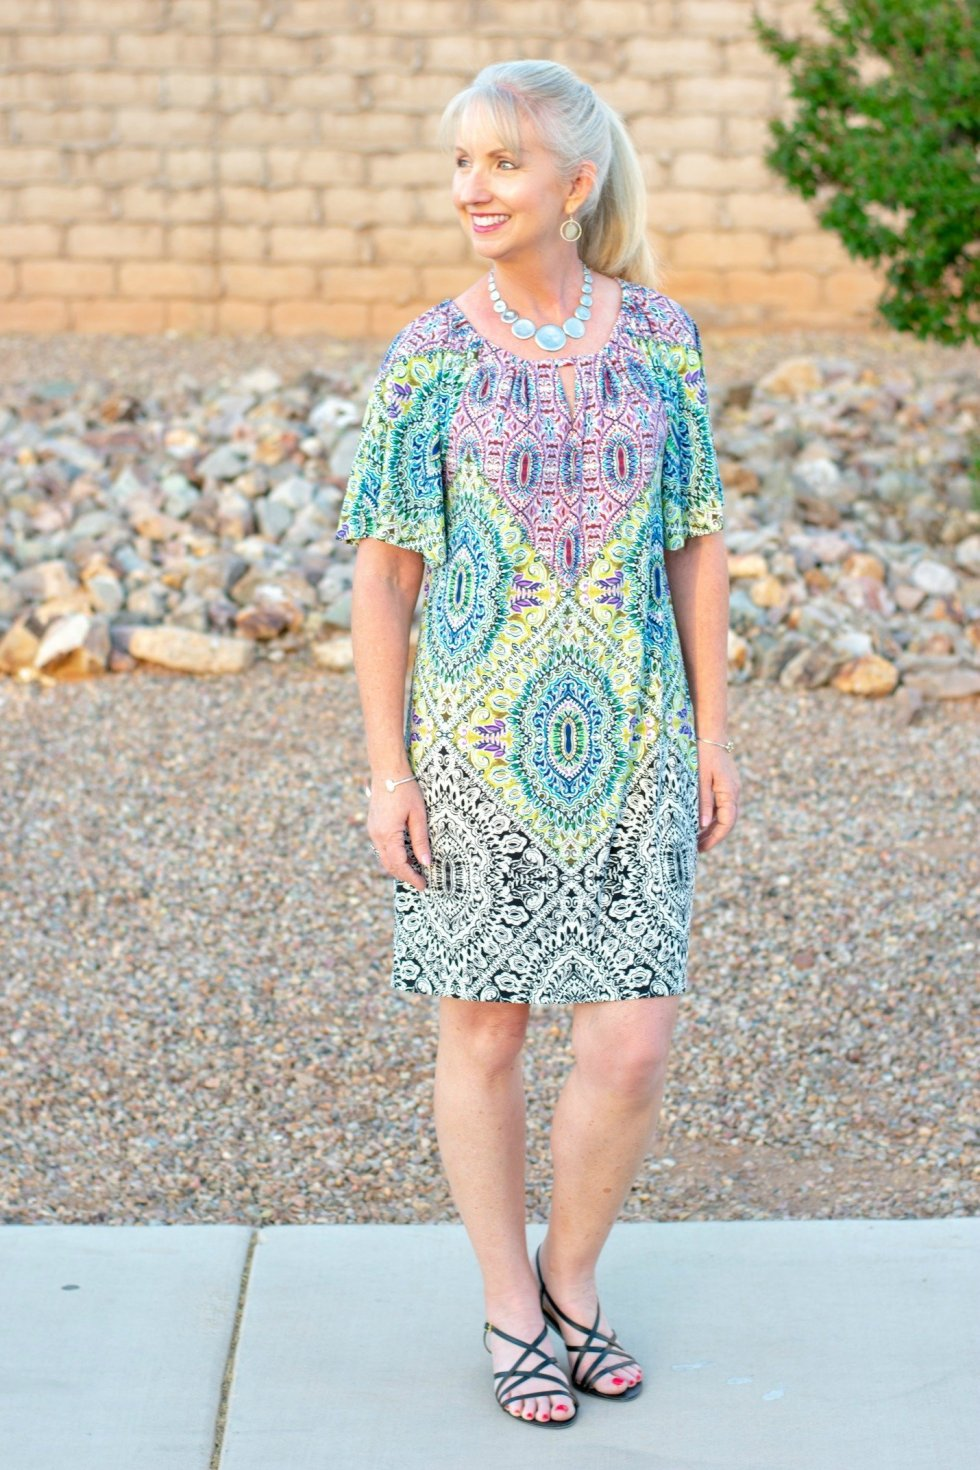 Medallion Print Dress for Chico's for ease and style